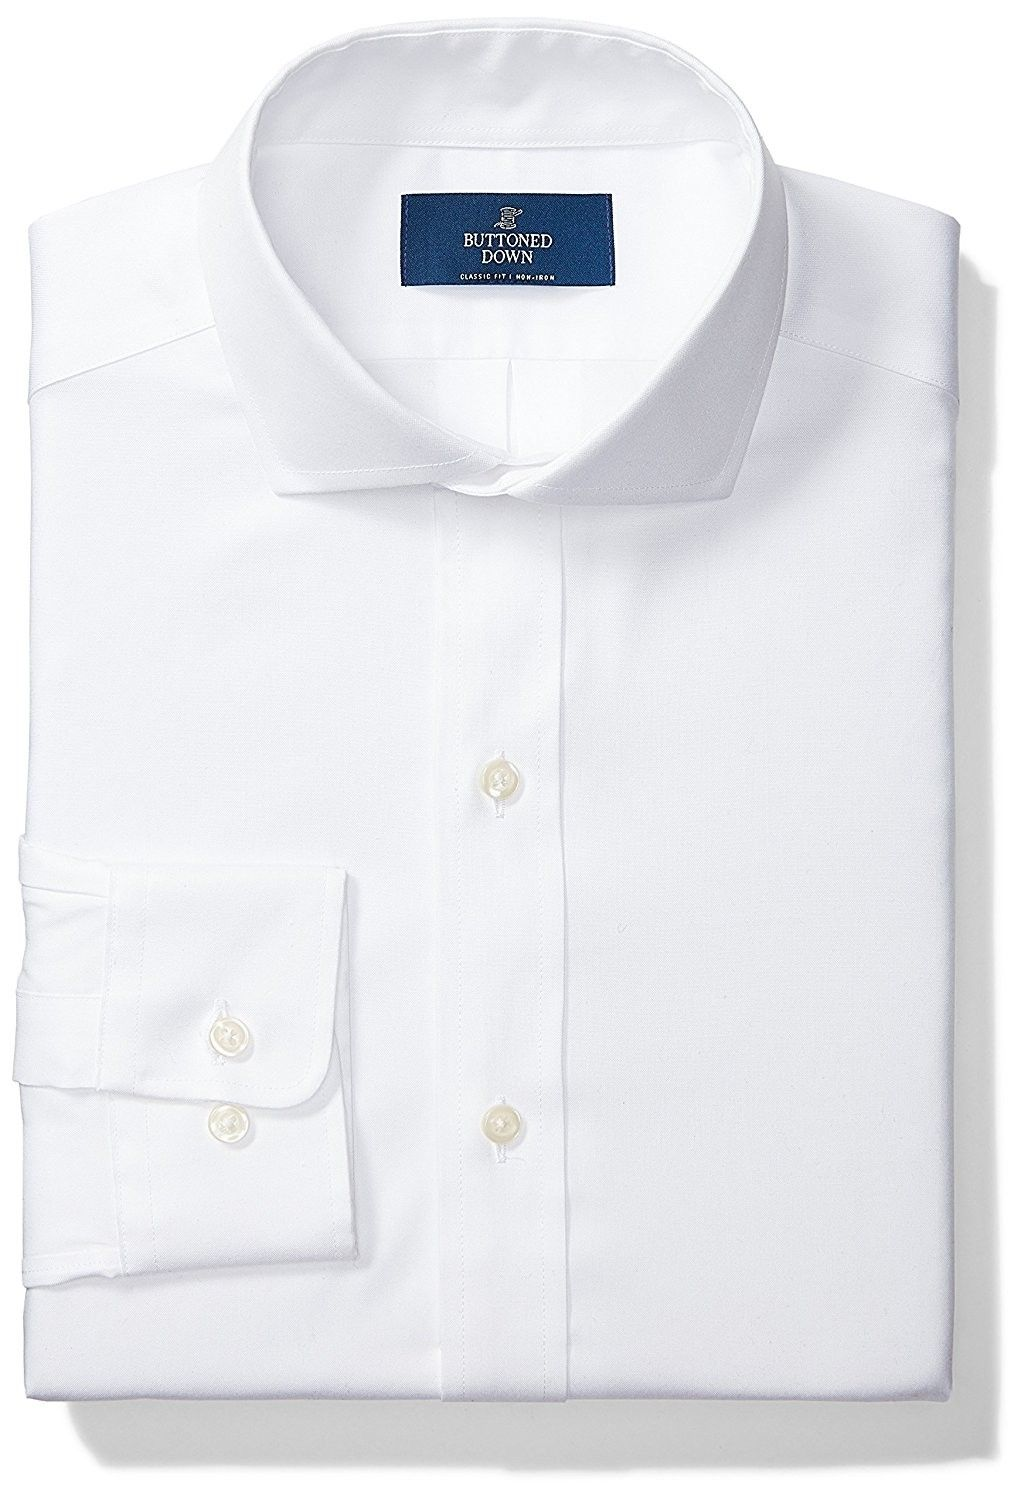 Mens Classic Fit Cutaway Collar Solid Non Iron Dress Shirt White